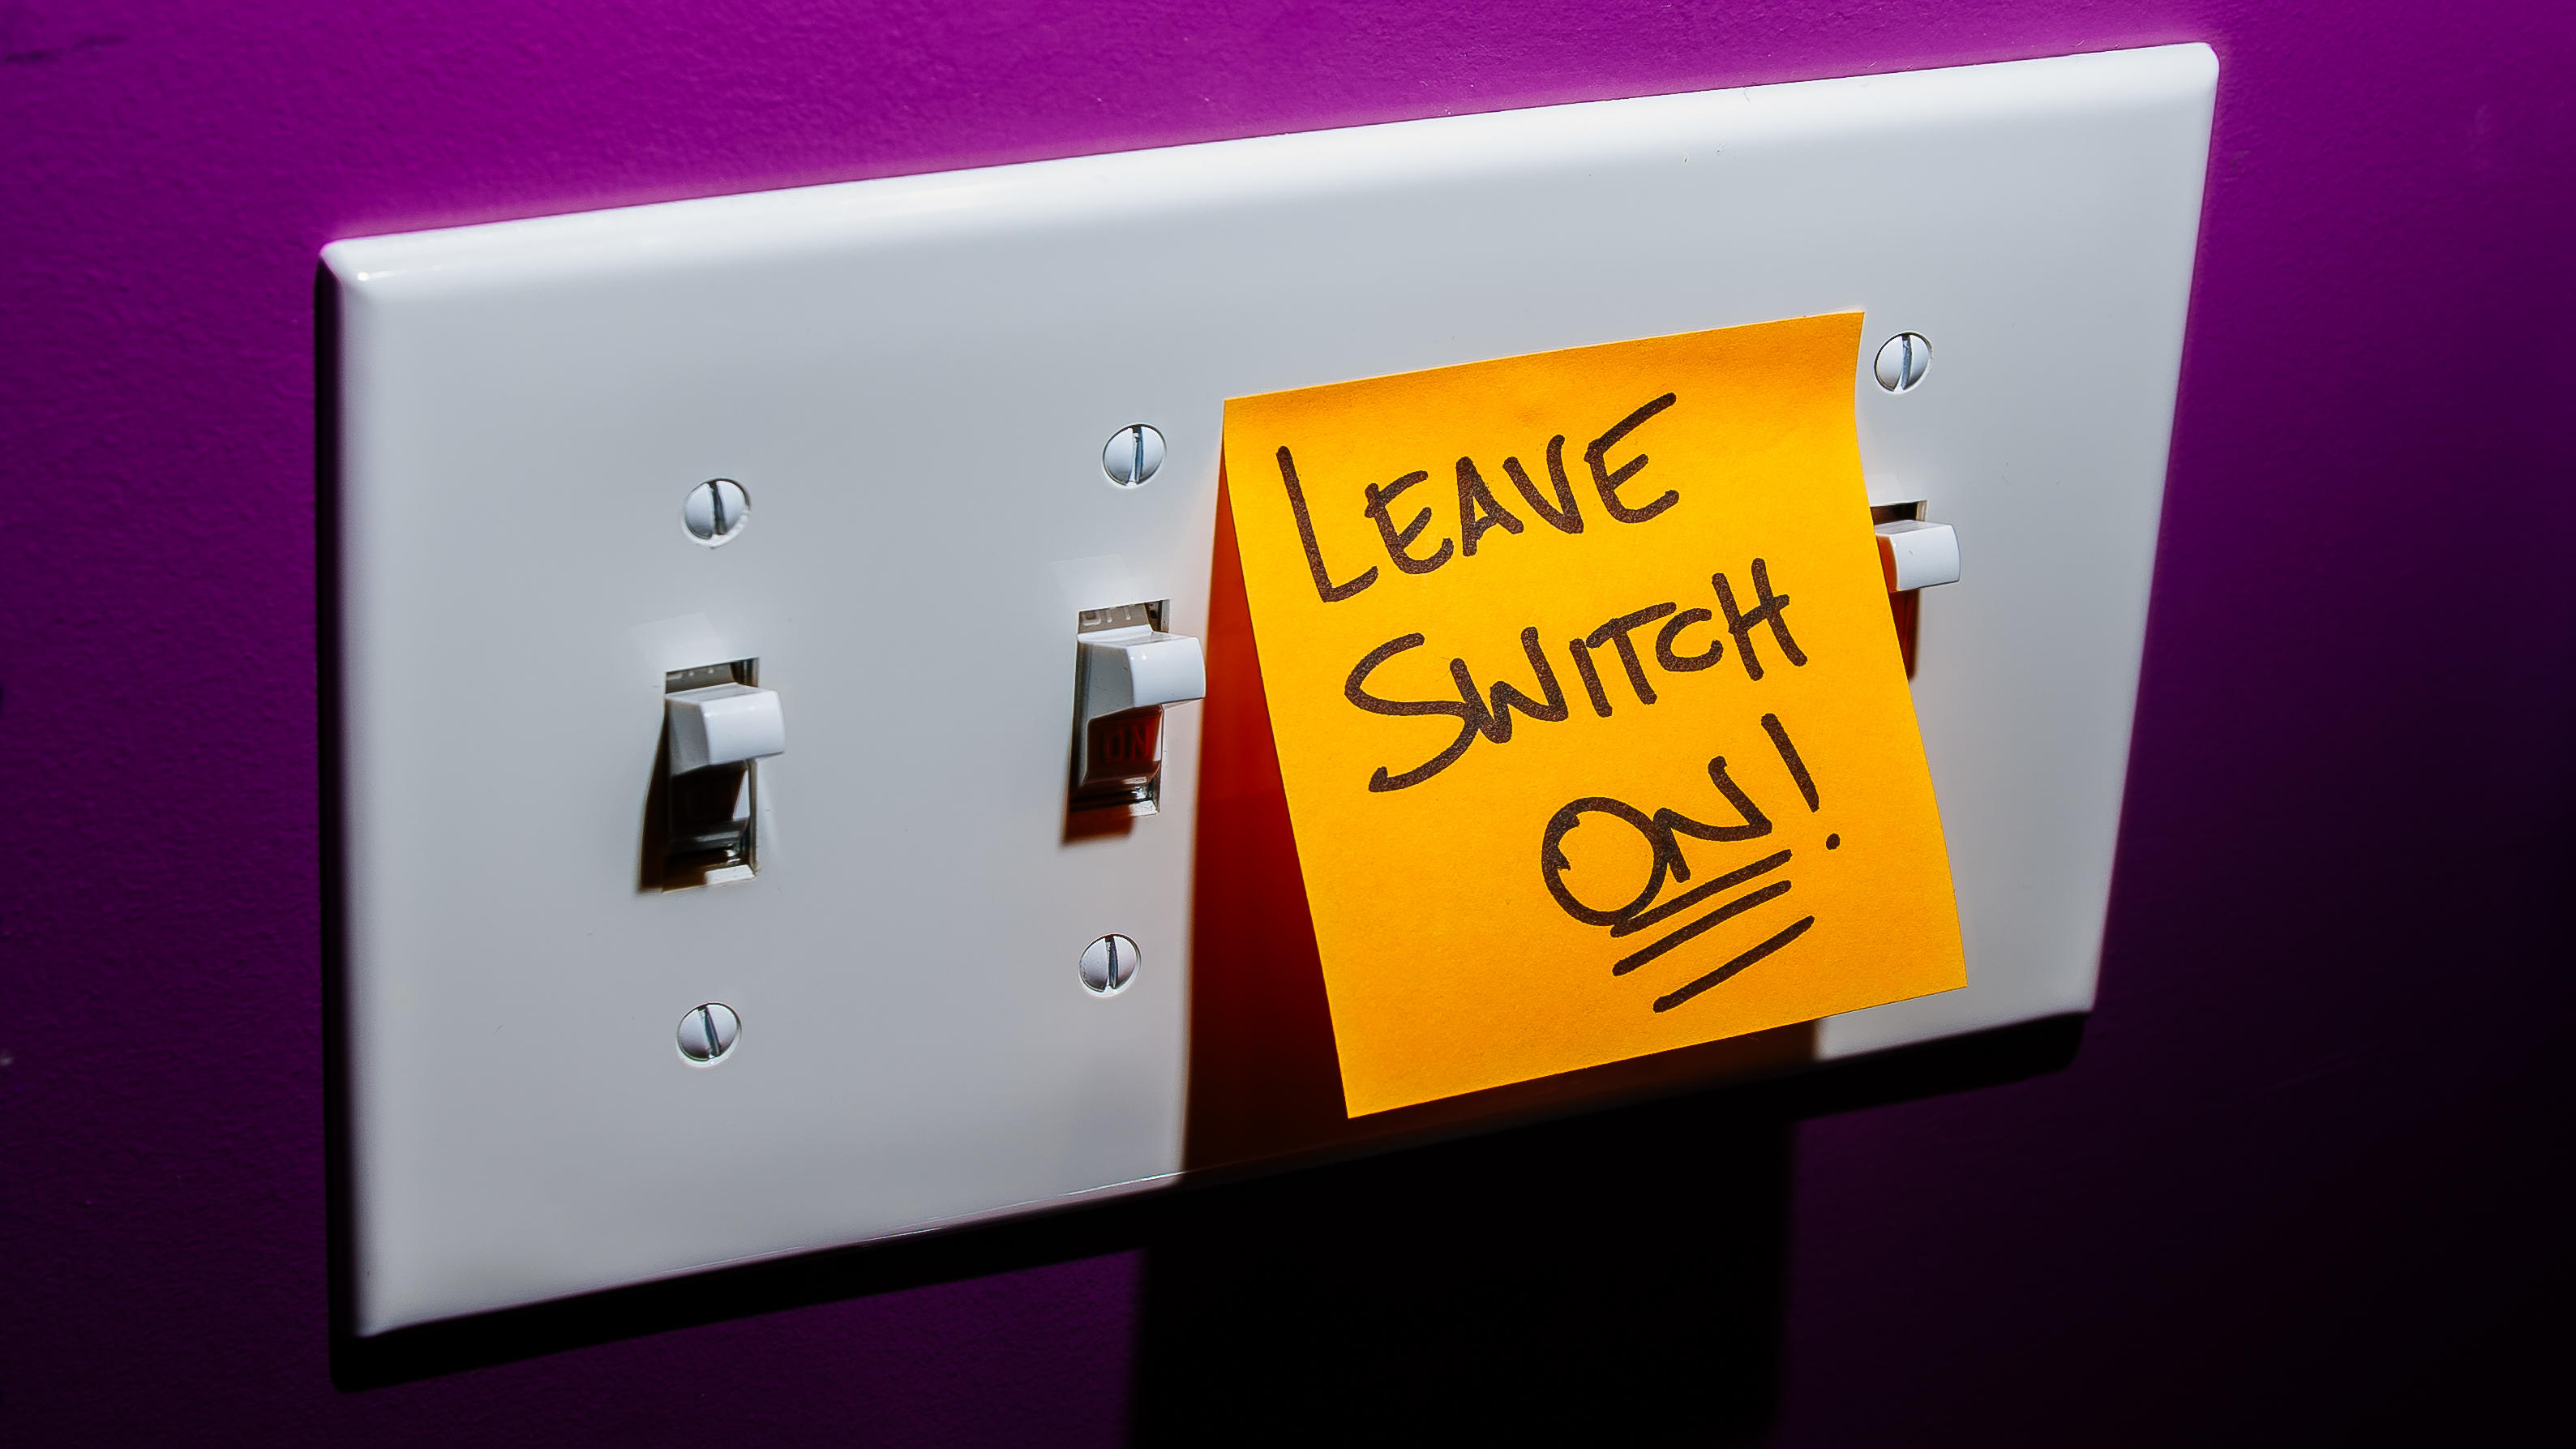 leave-switch-on-1-smart-bulbs-dumb-switches